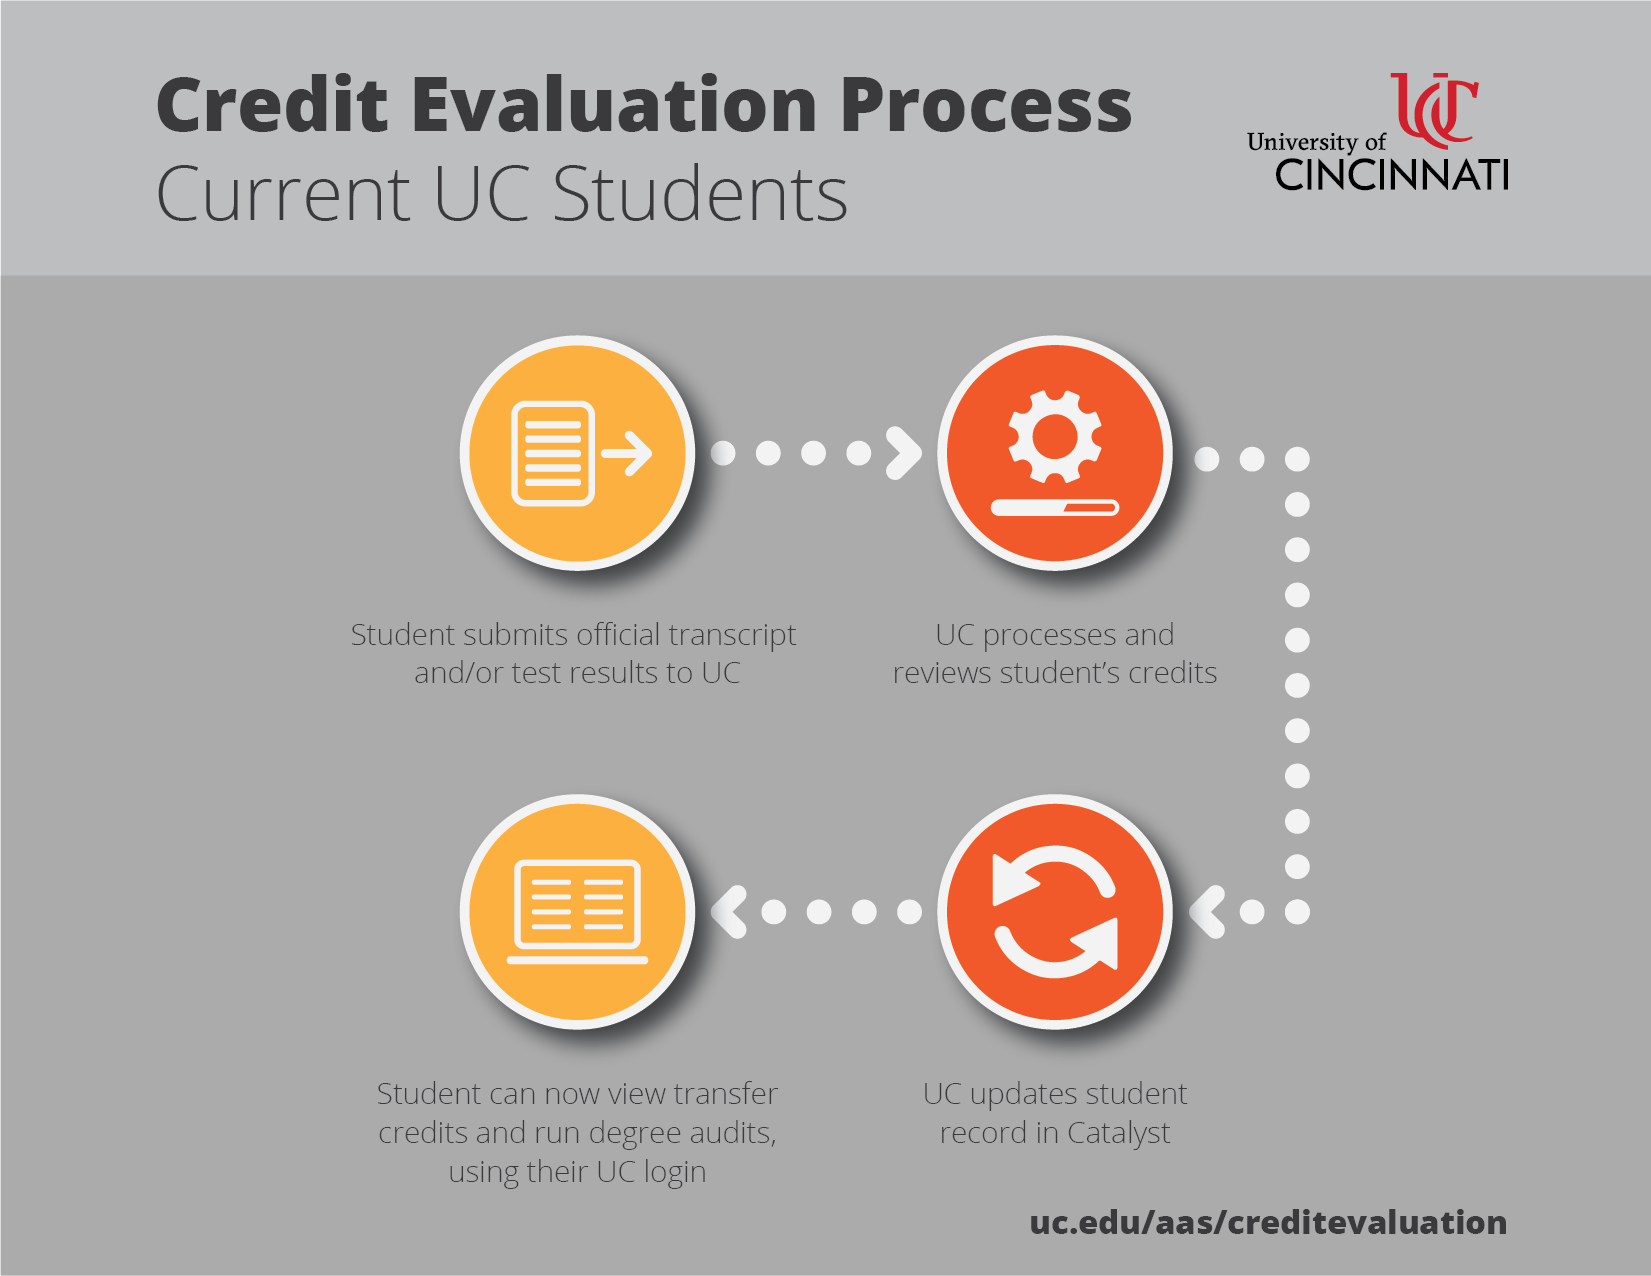 Timeline for Current UC Students